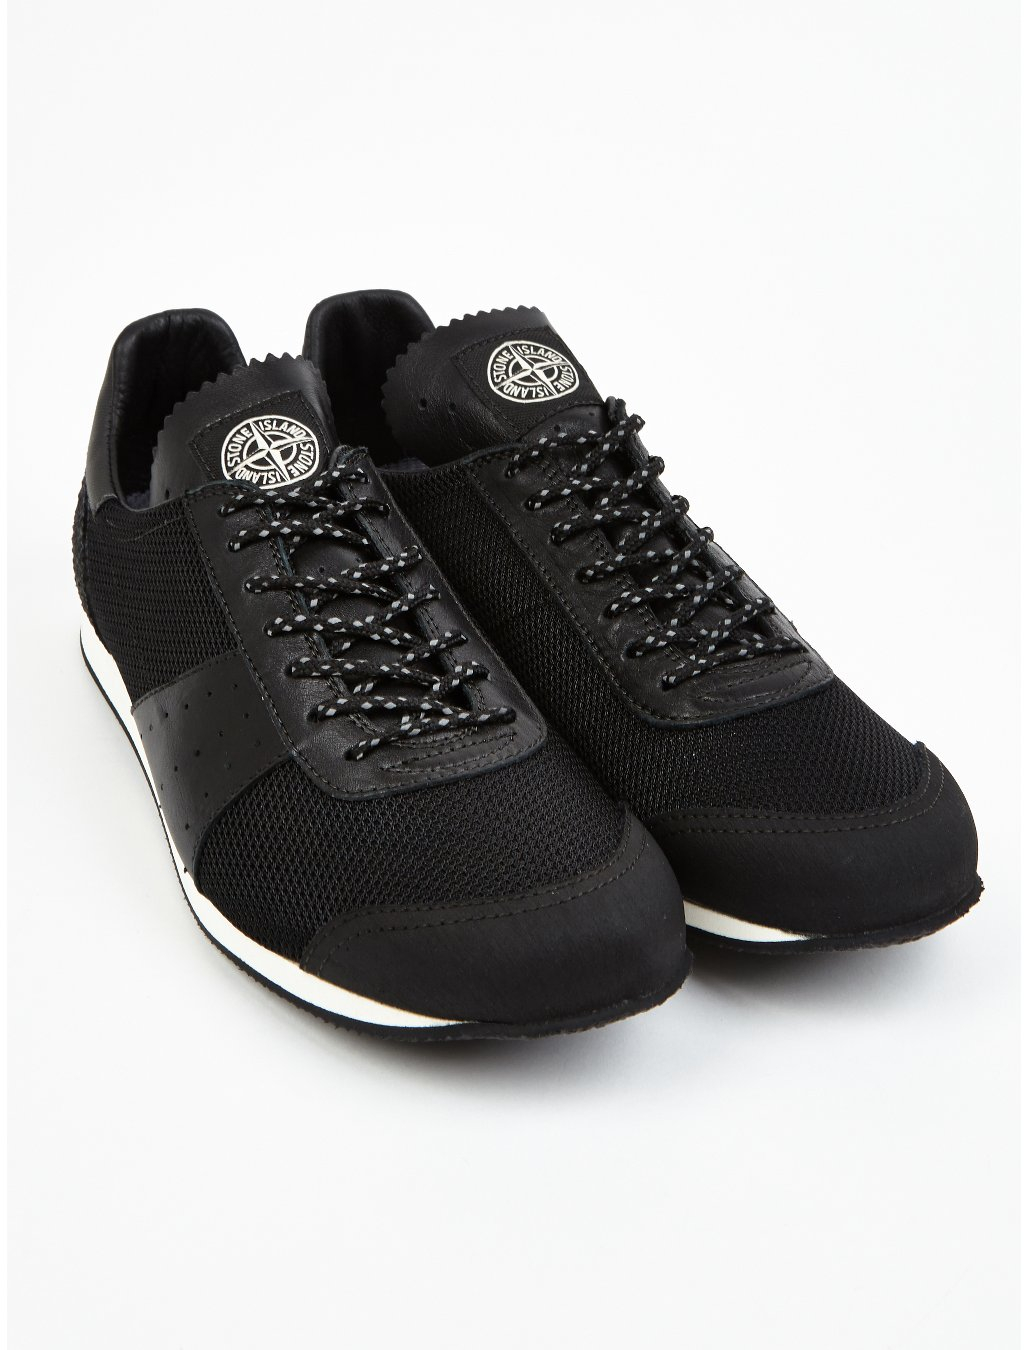 Black Nike Shoes With Reflective On Lace